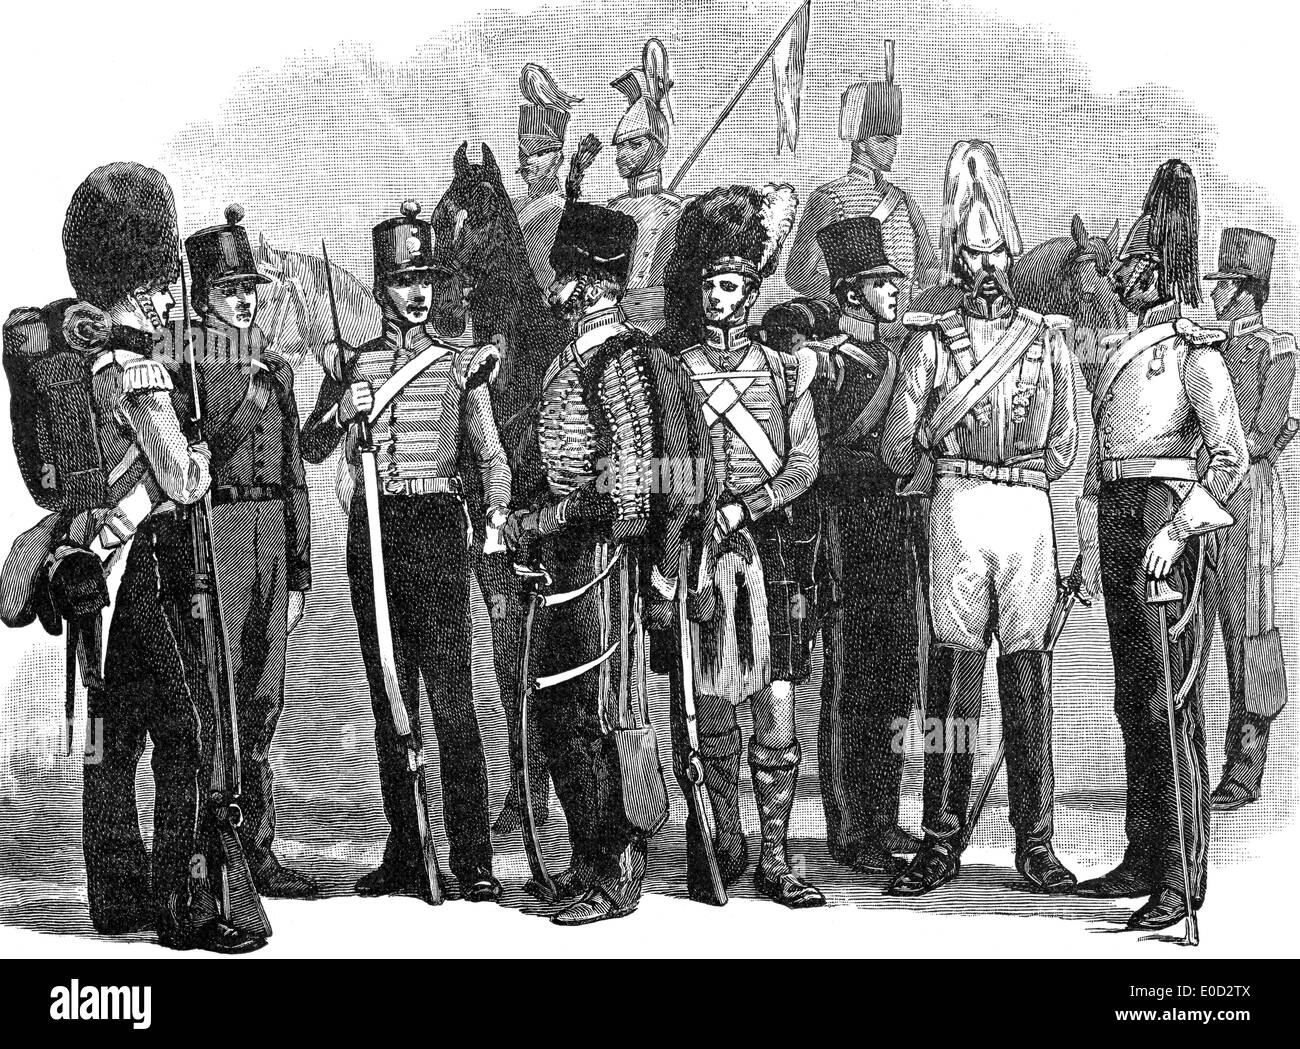 Uniforms of the British Army in 1855, Crimean War, 1853 - 1856 - Stock Image